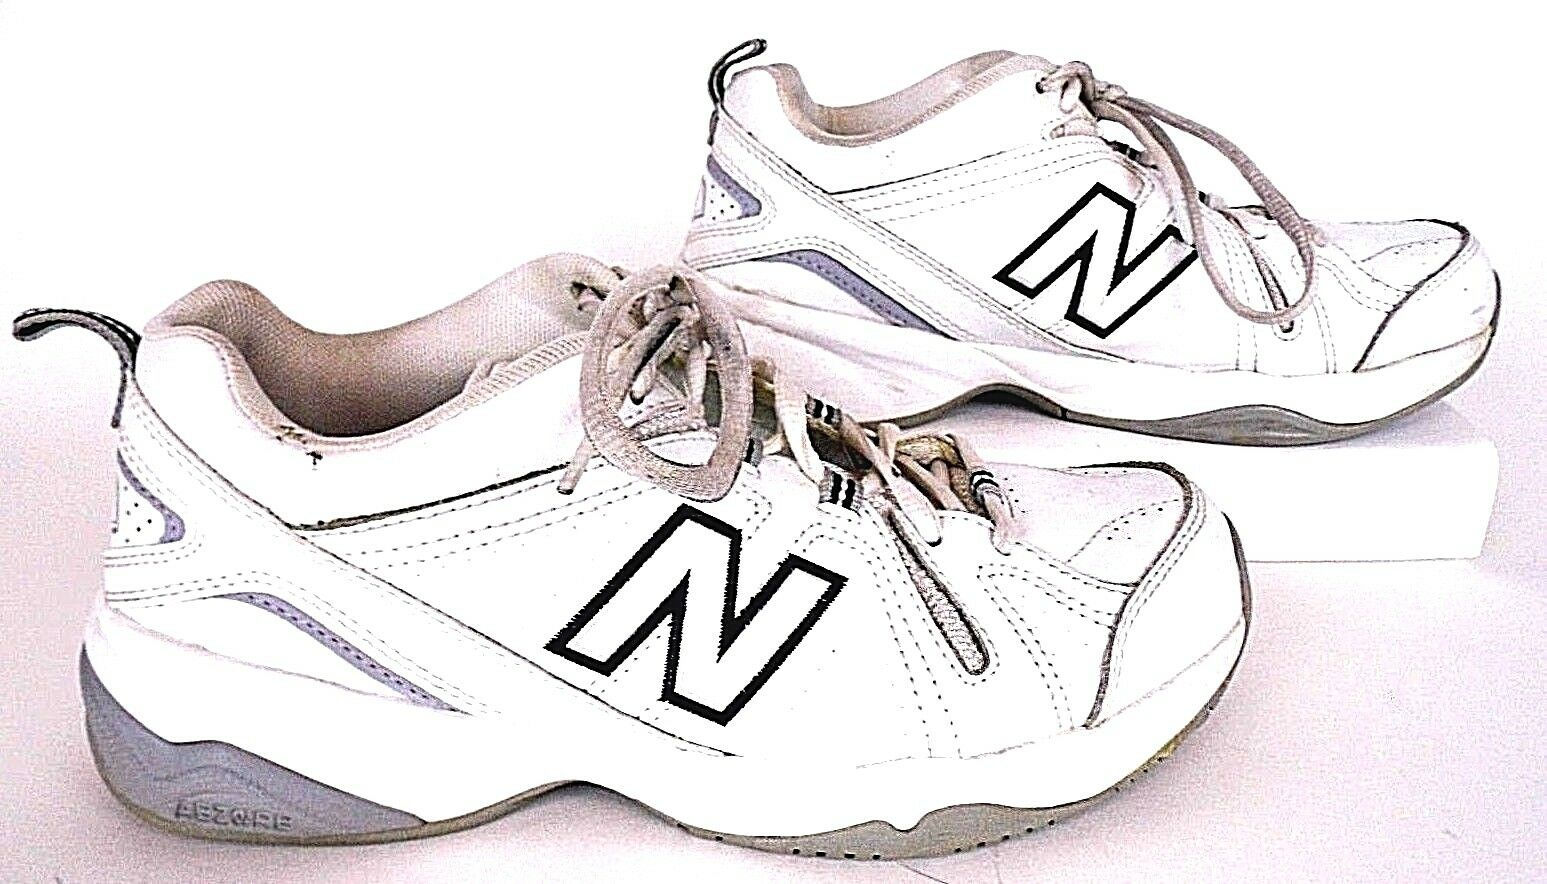 New Balance WX608V4W Athletic Cross Training Running shoes Sneakers Women's Sz 8